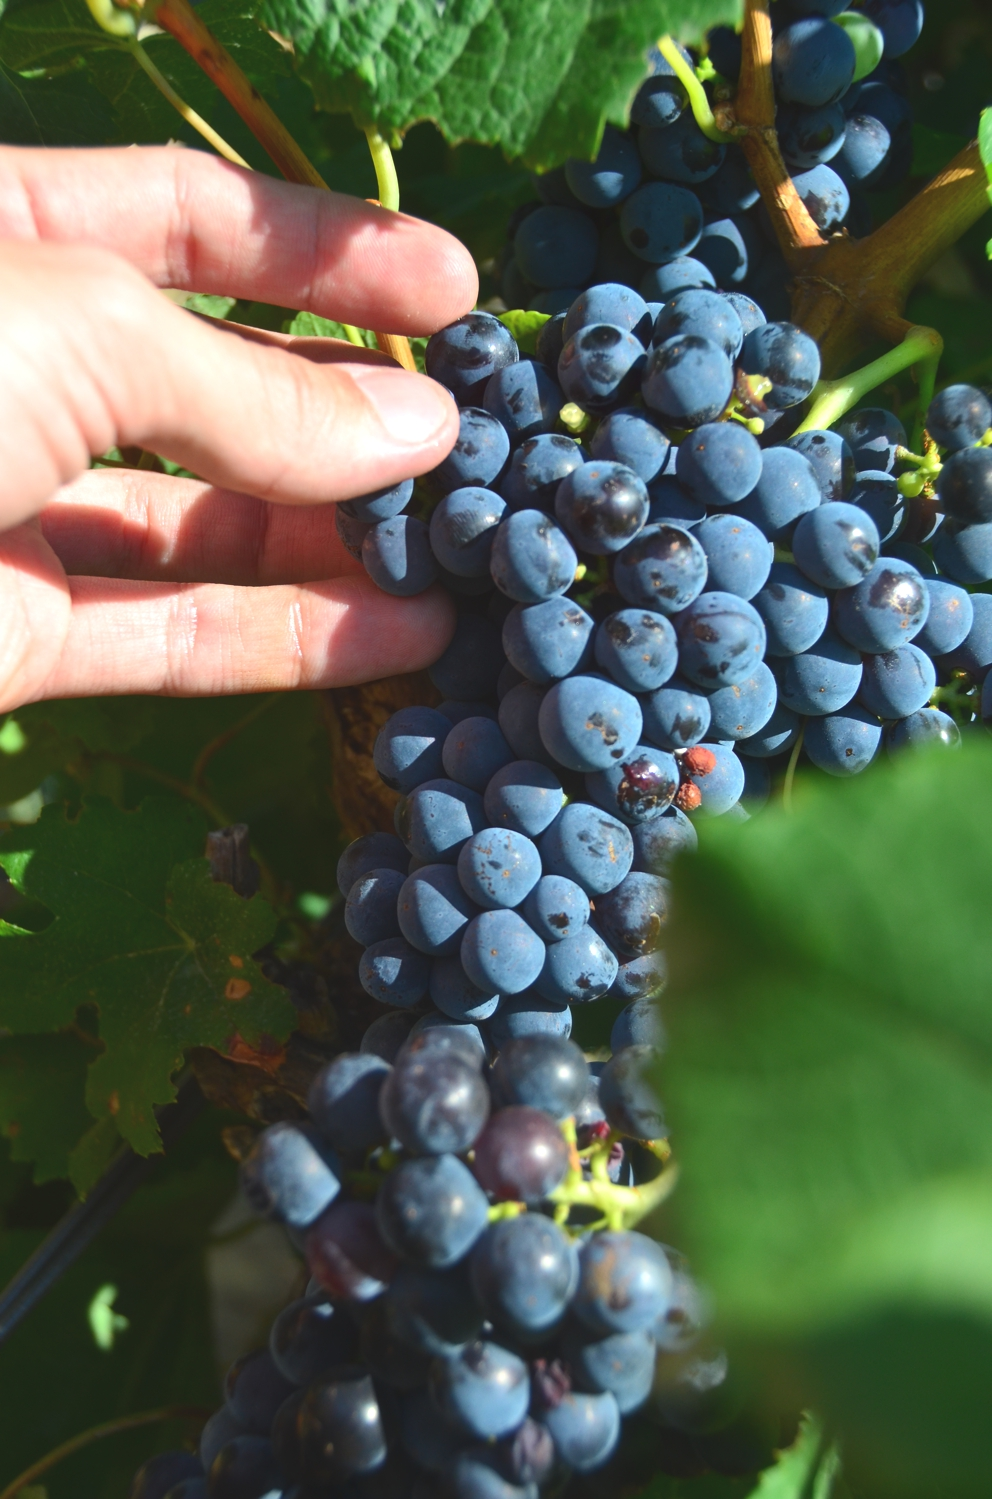 One of my favorite parts of any wine tour is roaming through vineyards – and eating grapes!